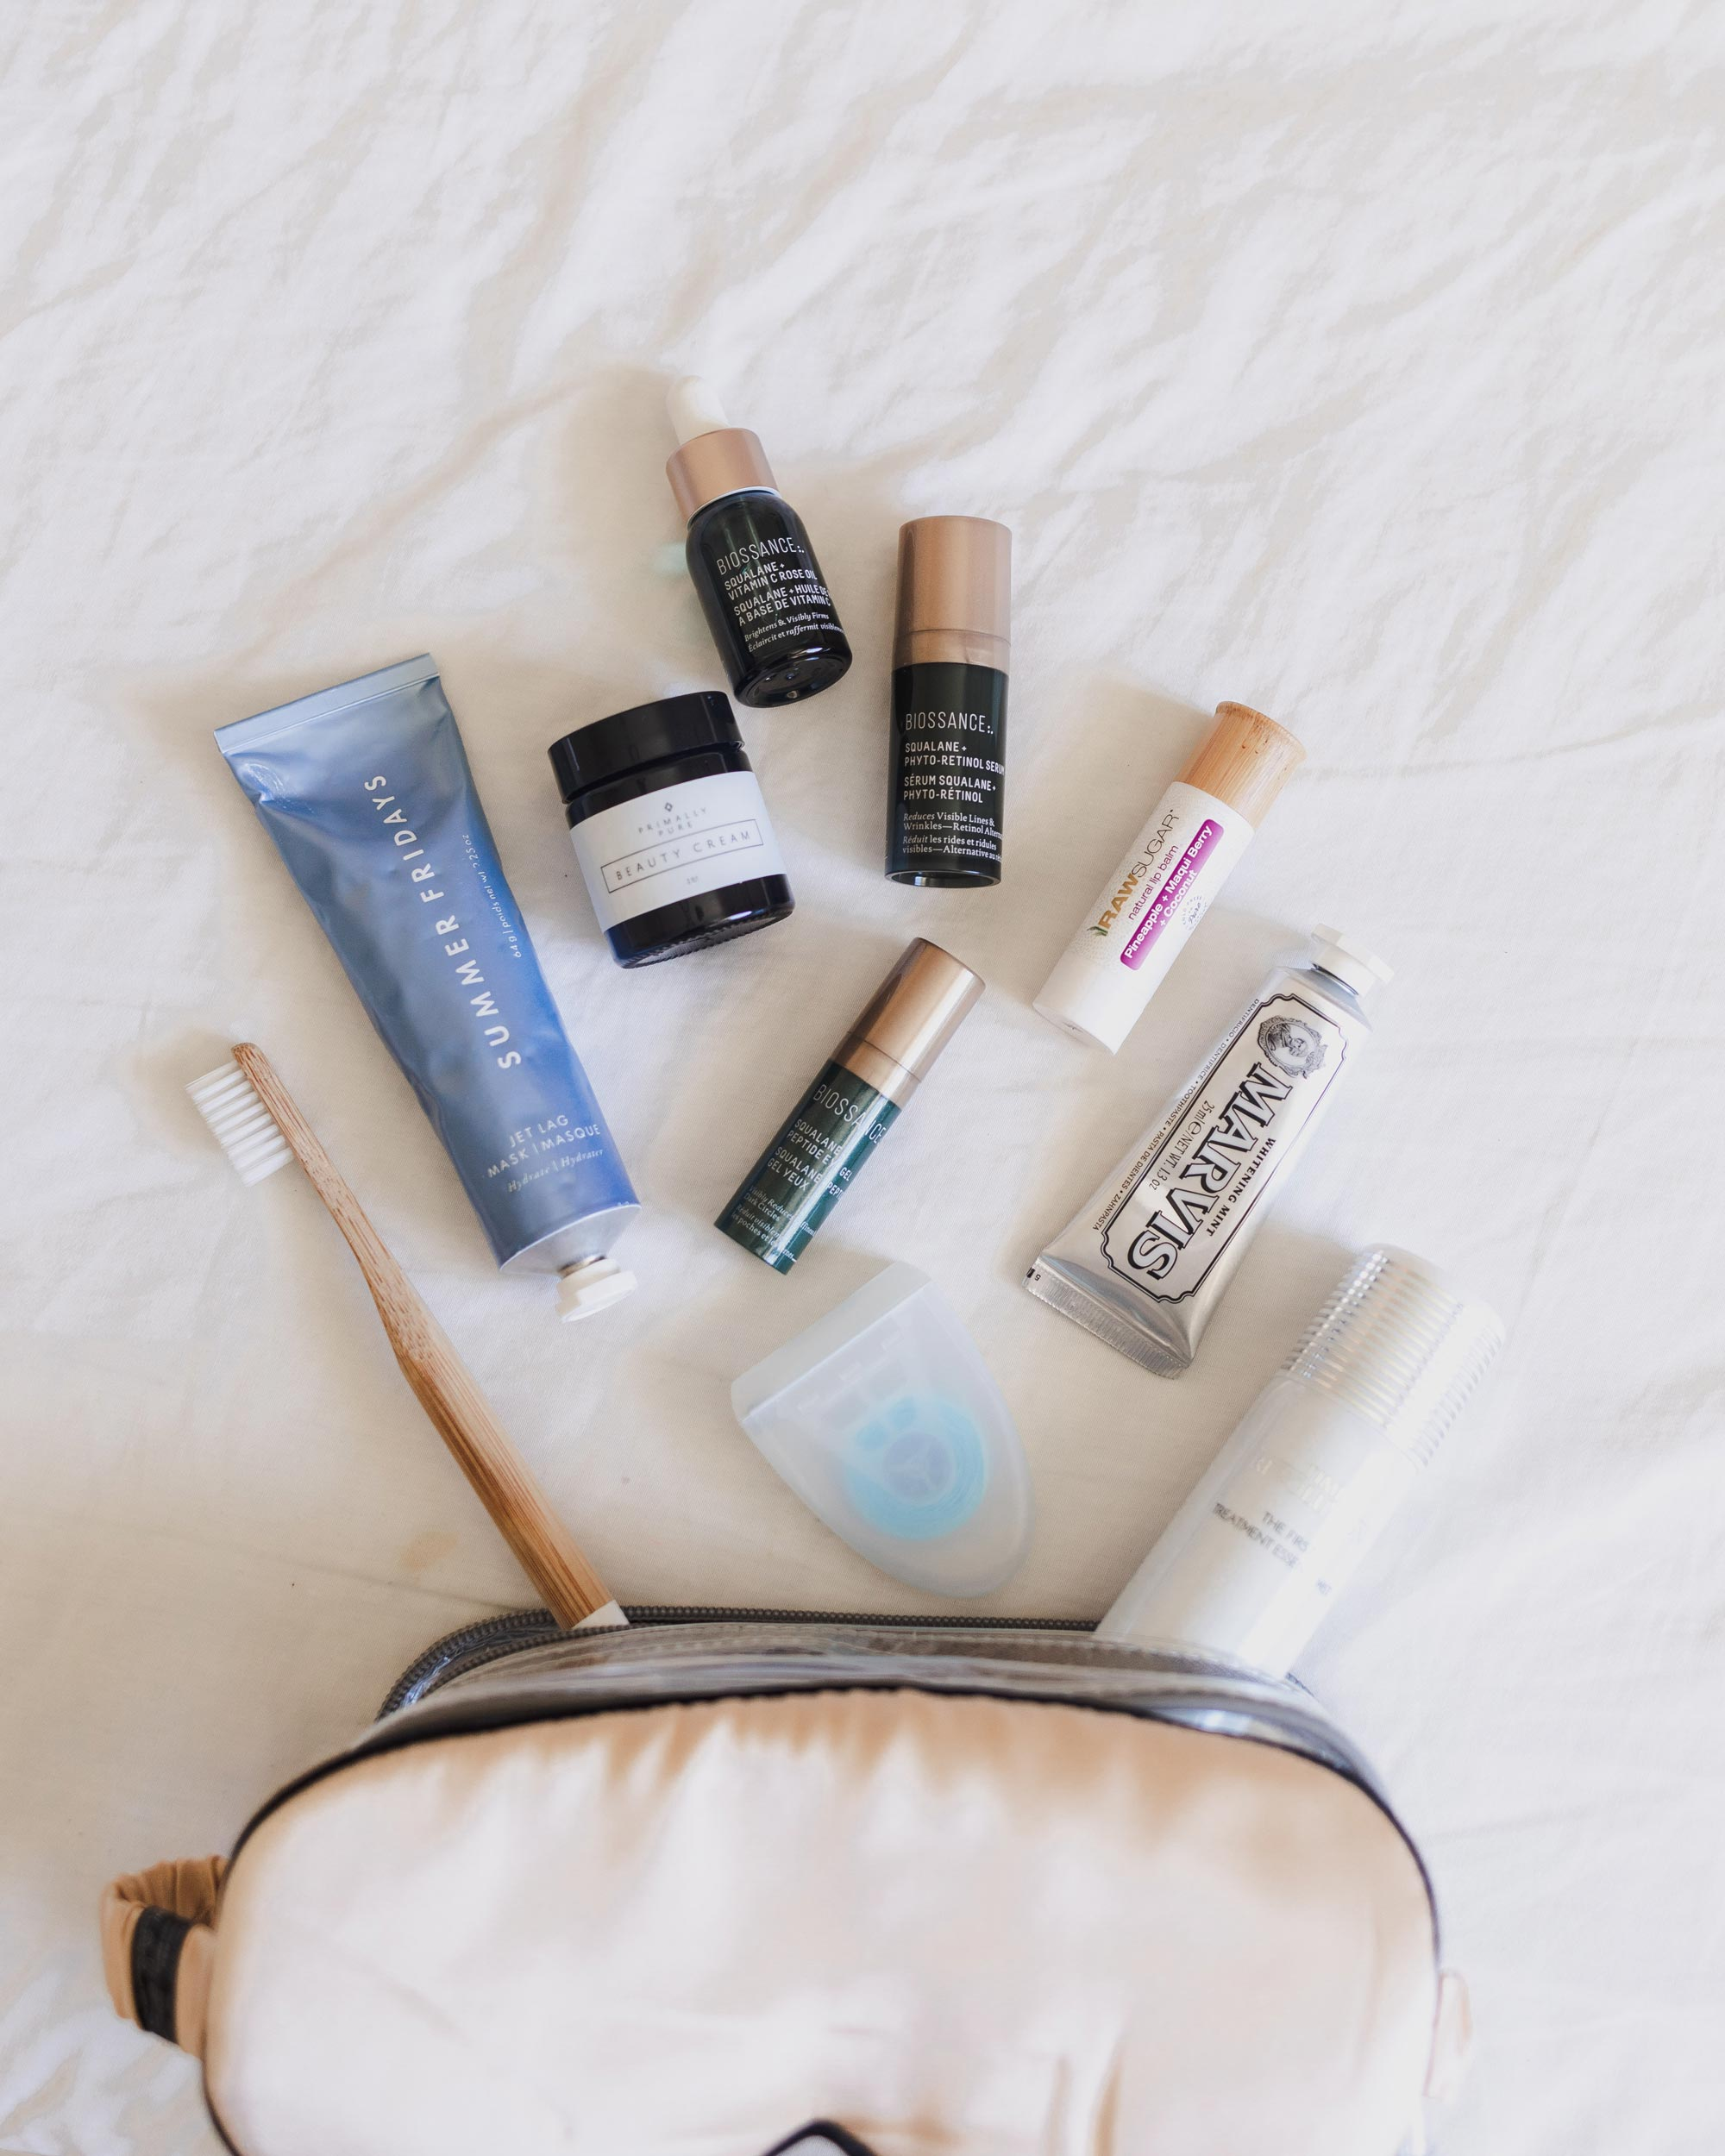 Holiday Trip | What's in my toiletry bag?